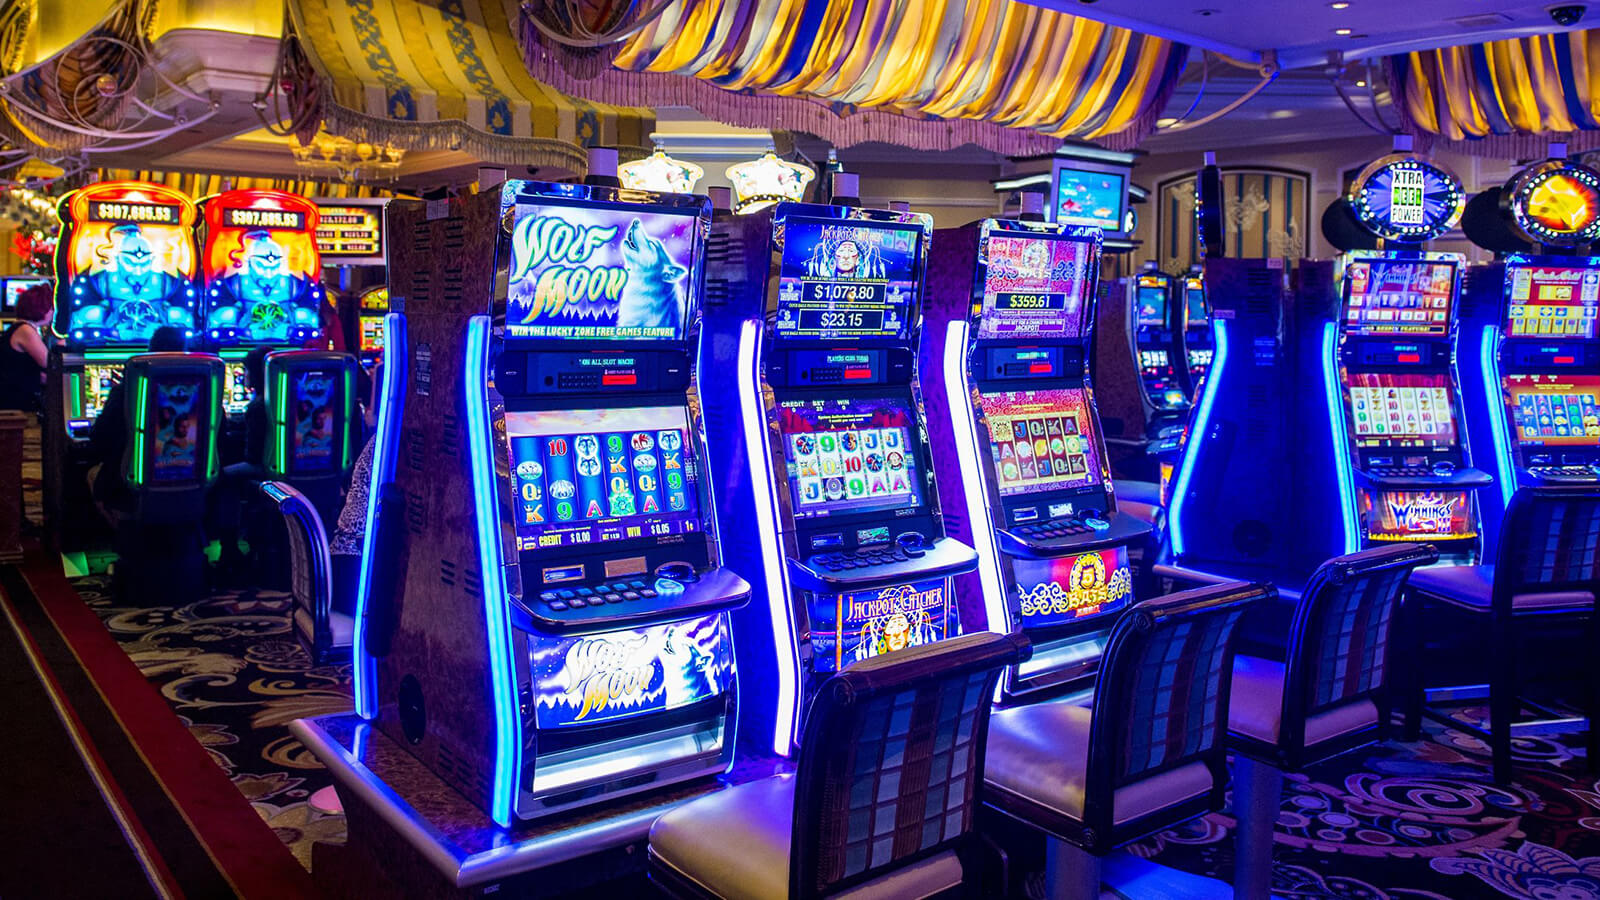 The best way to choose an online slot game site is a lot of bonuses